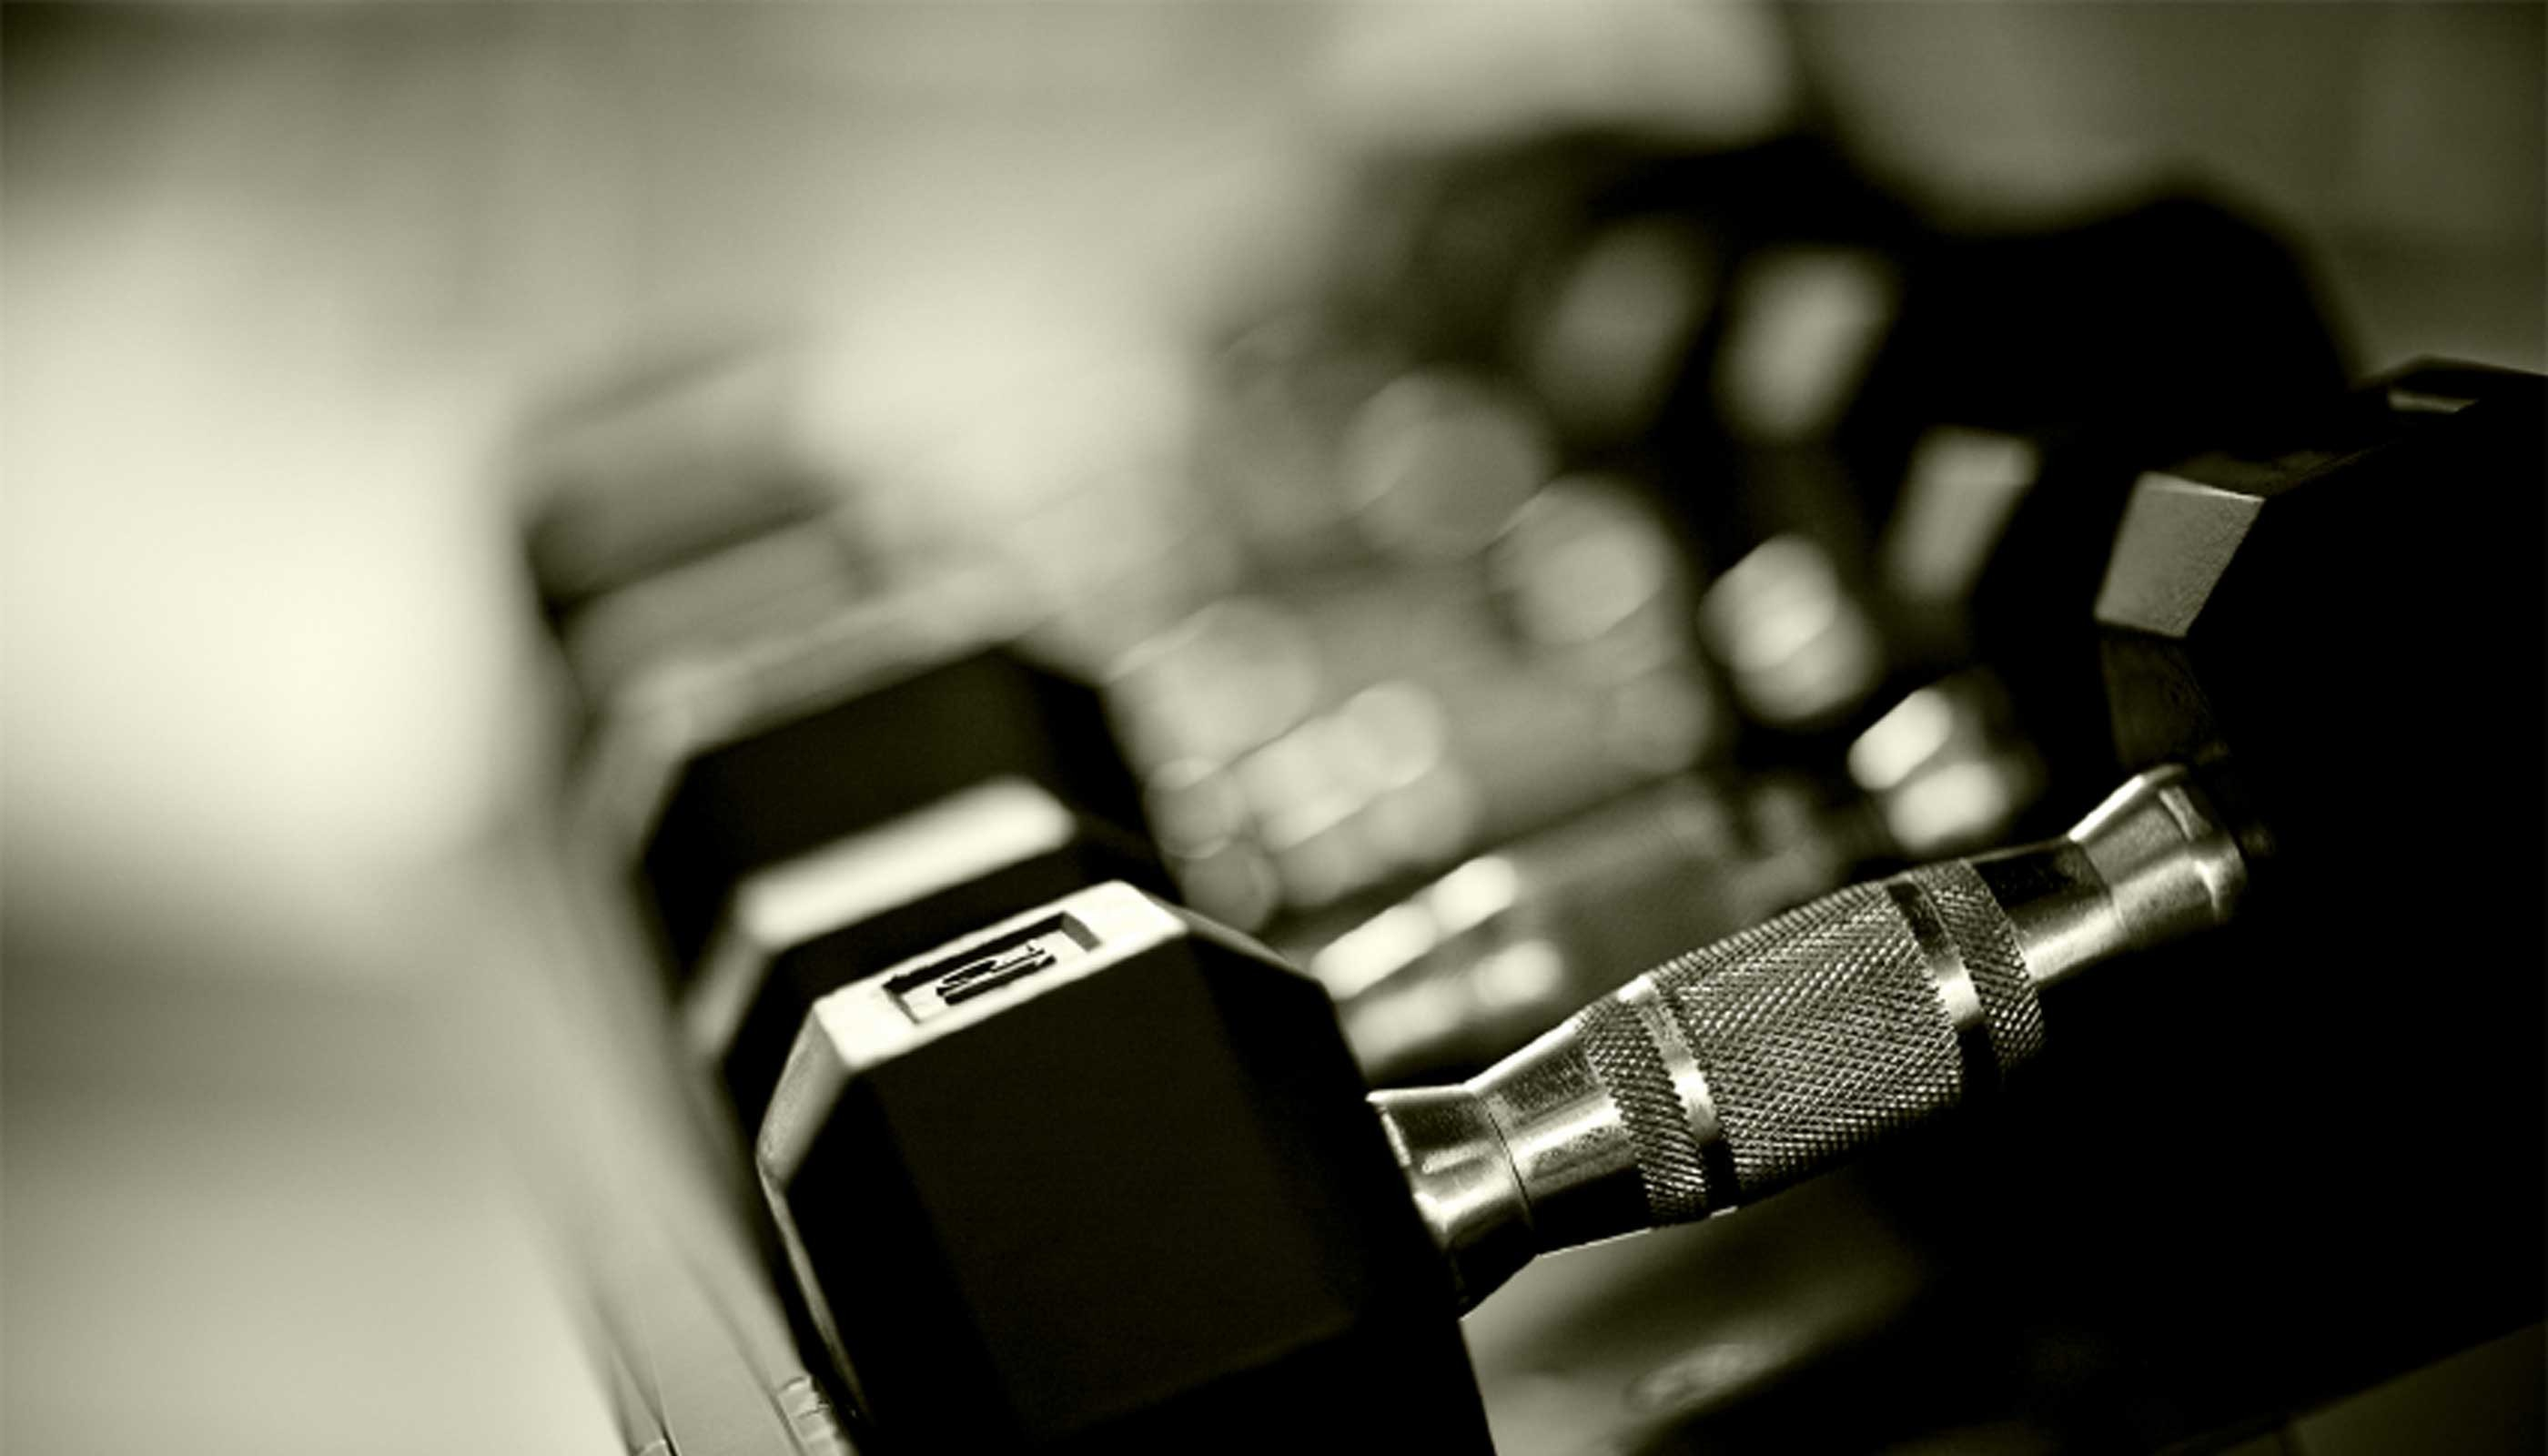 Gym Wallpaper HD (65+ Images